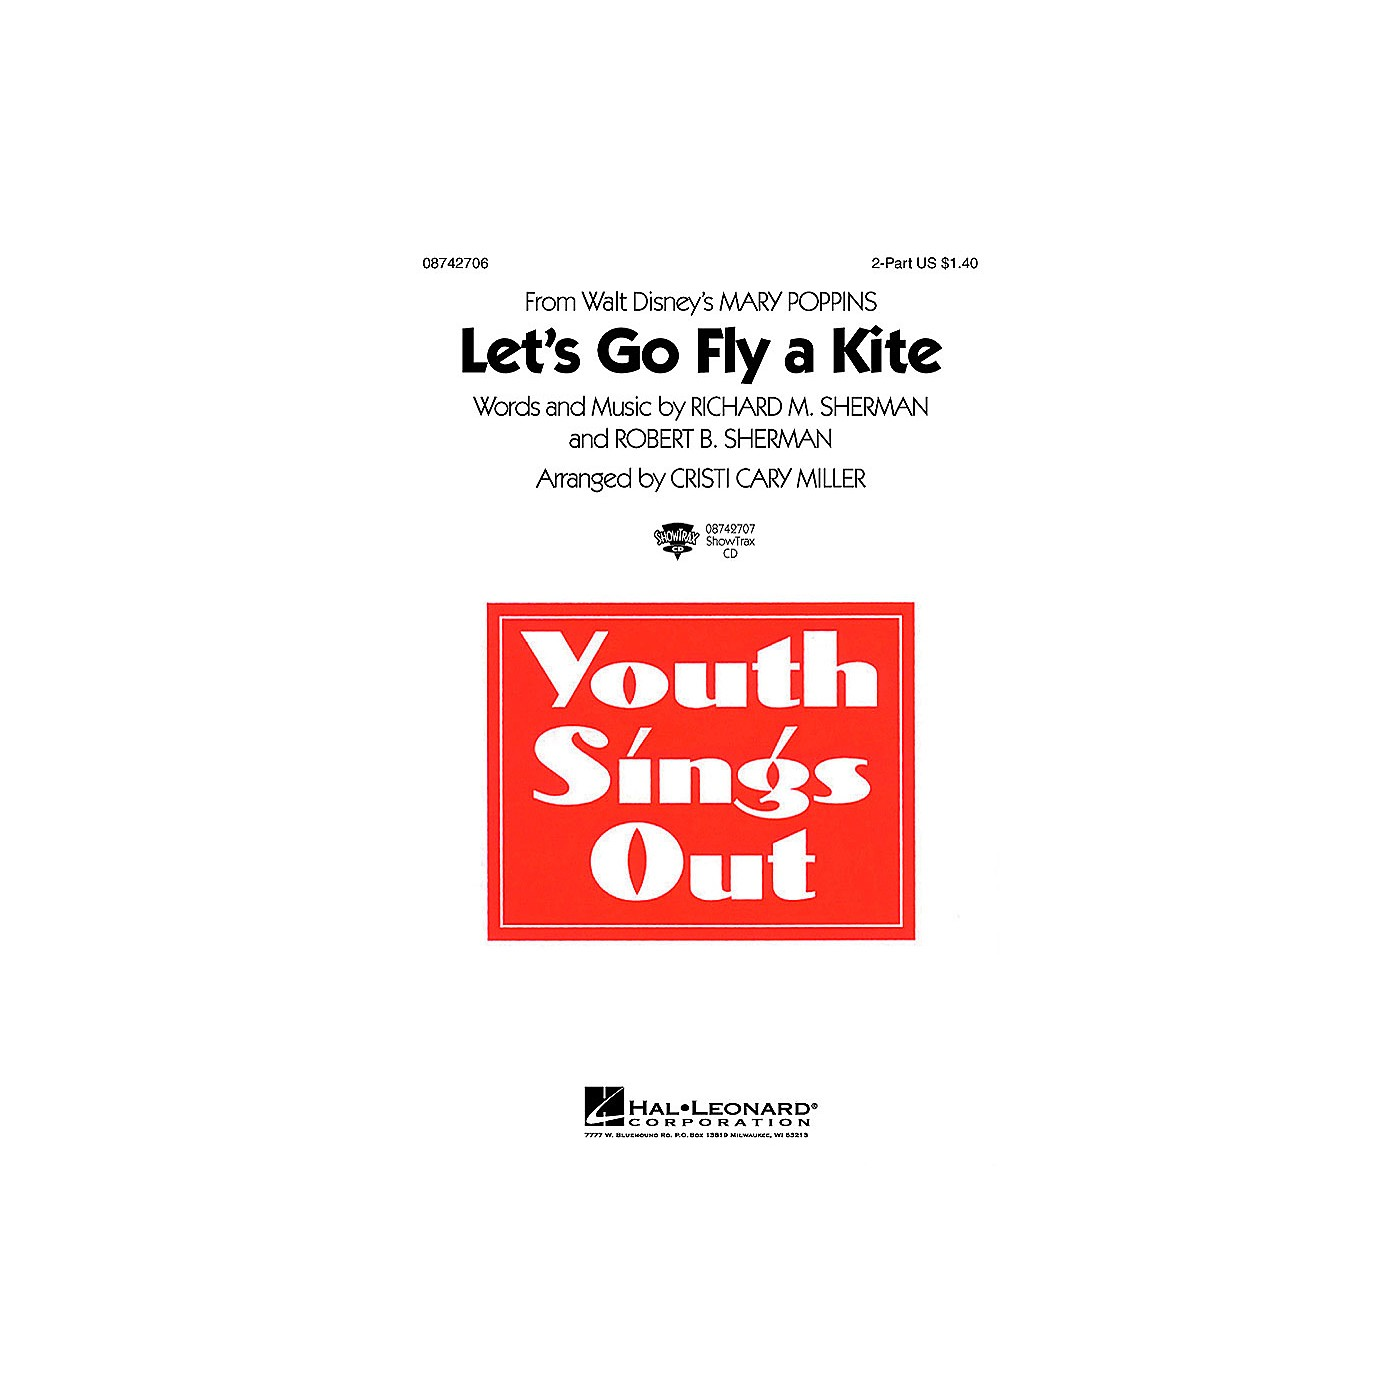 Hal Leonard Let's Go Fly a Kite (from Mary Poppins) 2-Part arranged by Cristi Cary Miller thumbnail